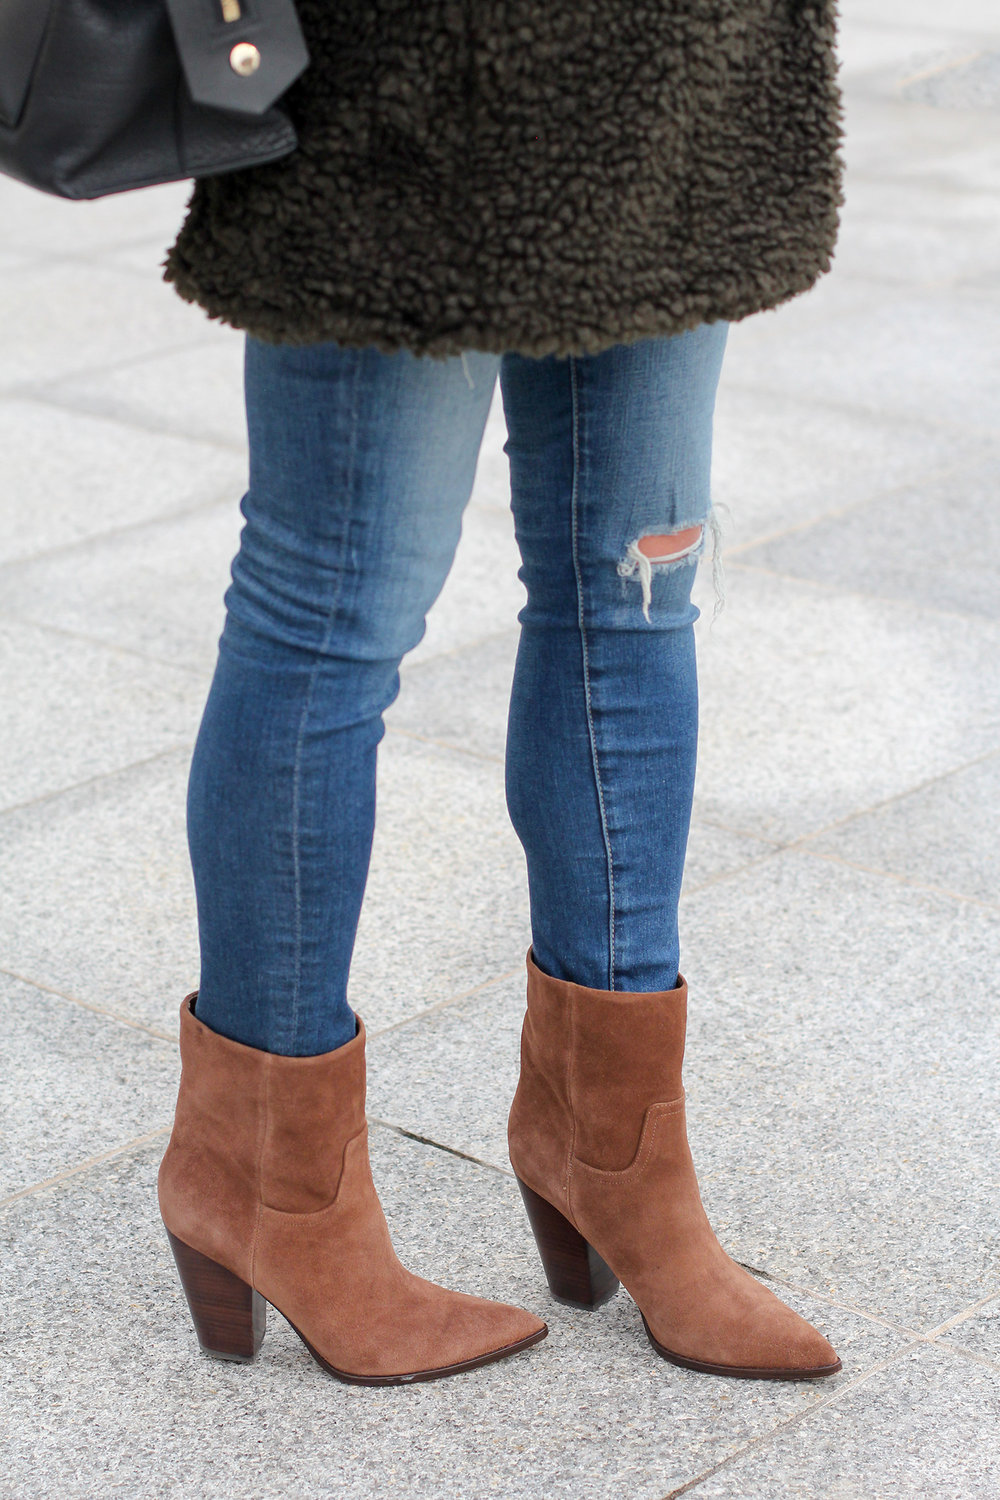 Distressed Jeans, Marc Fisher Suede Boots